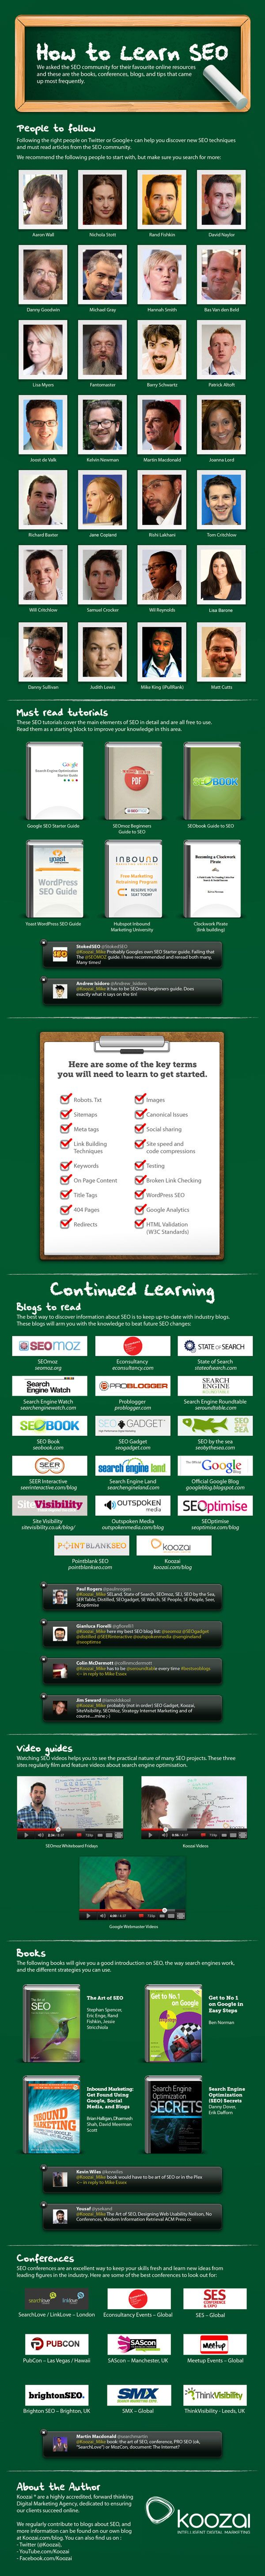 How to learn #SEO